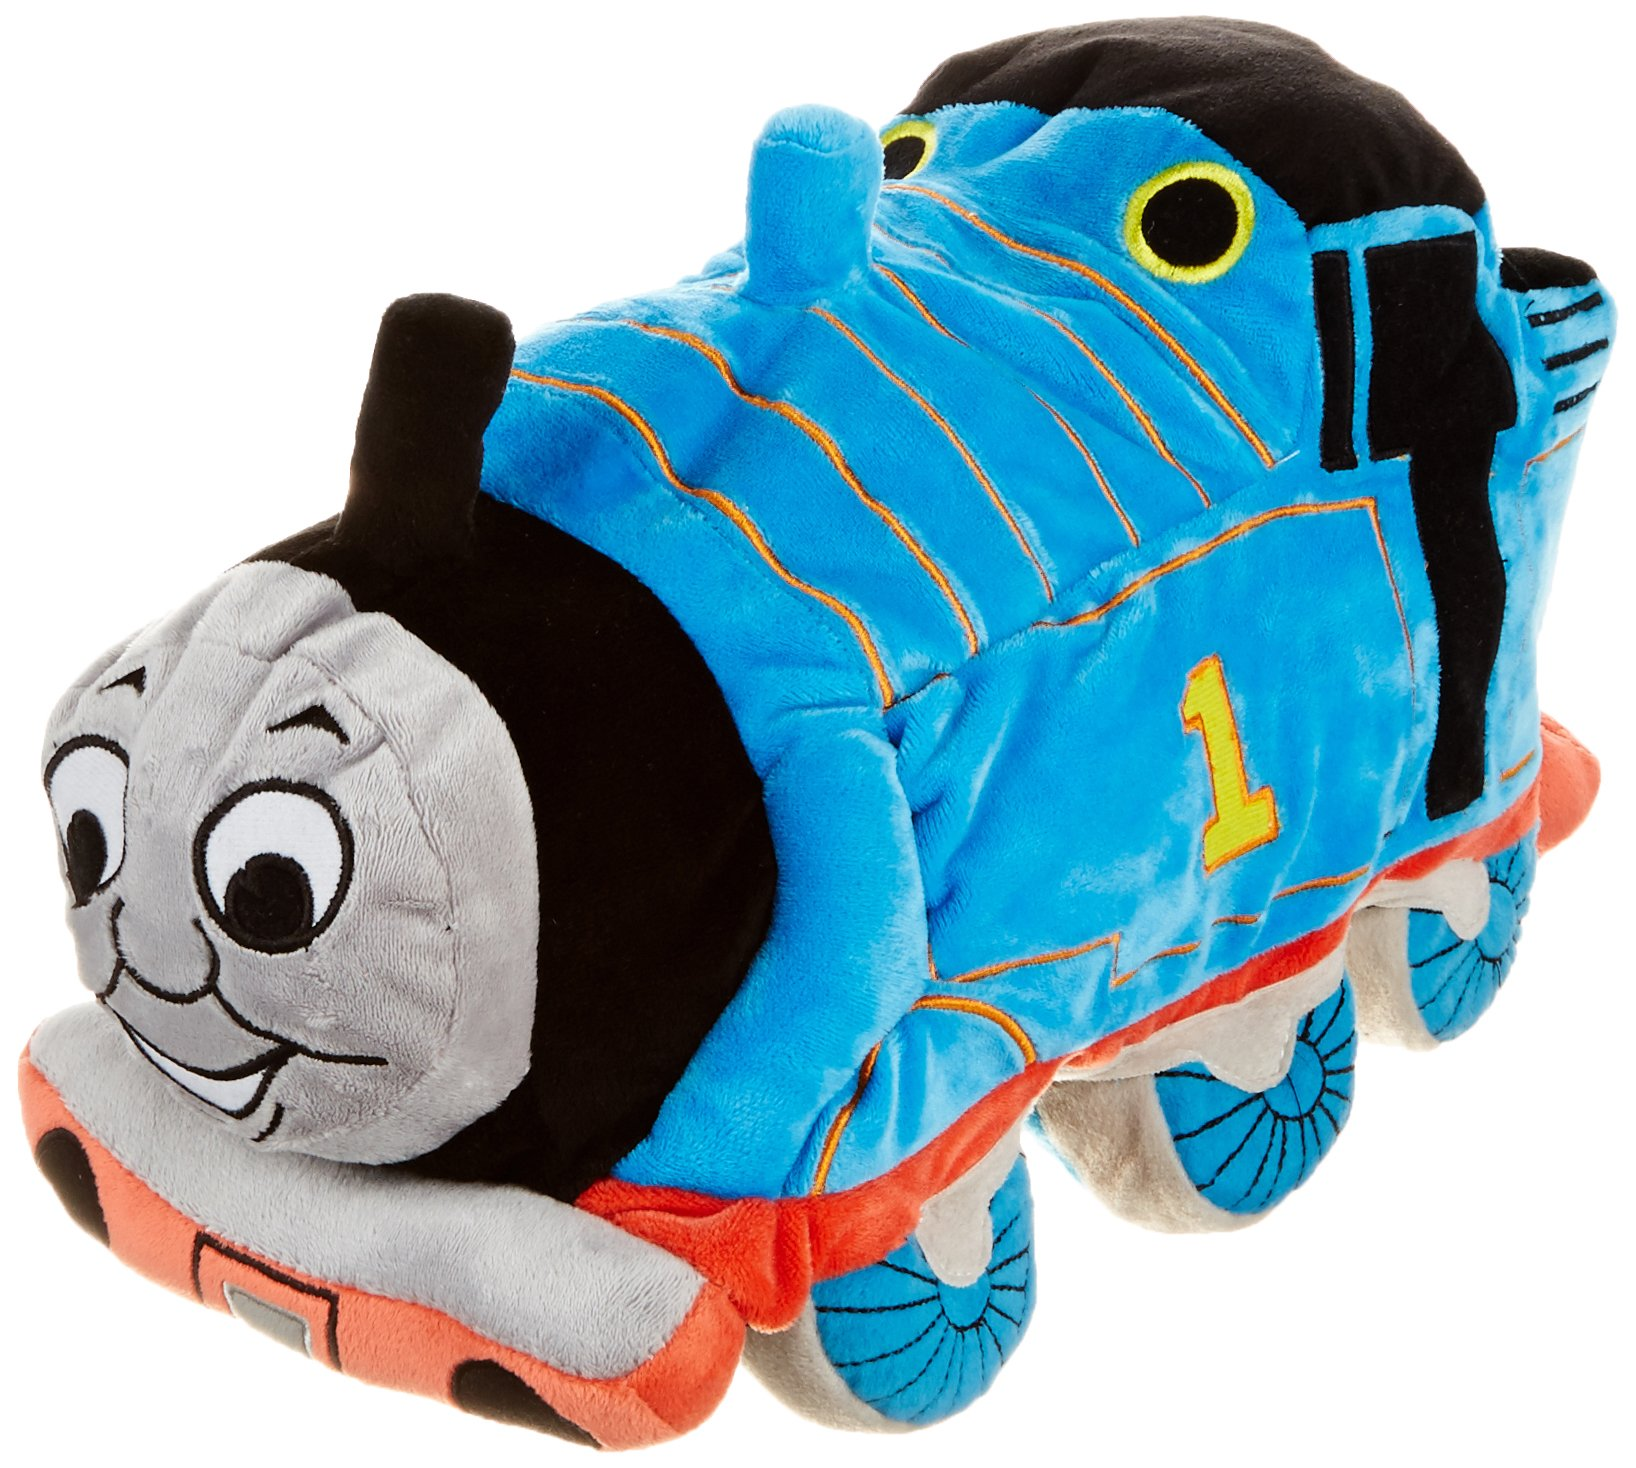 Mattel Thomas and Friends Plush Stuffed Thomas Pillow Buddy - Kids Super Soft Polyester Microfiber, 15 inch (Official Mattel Product)